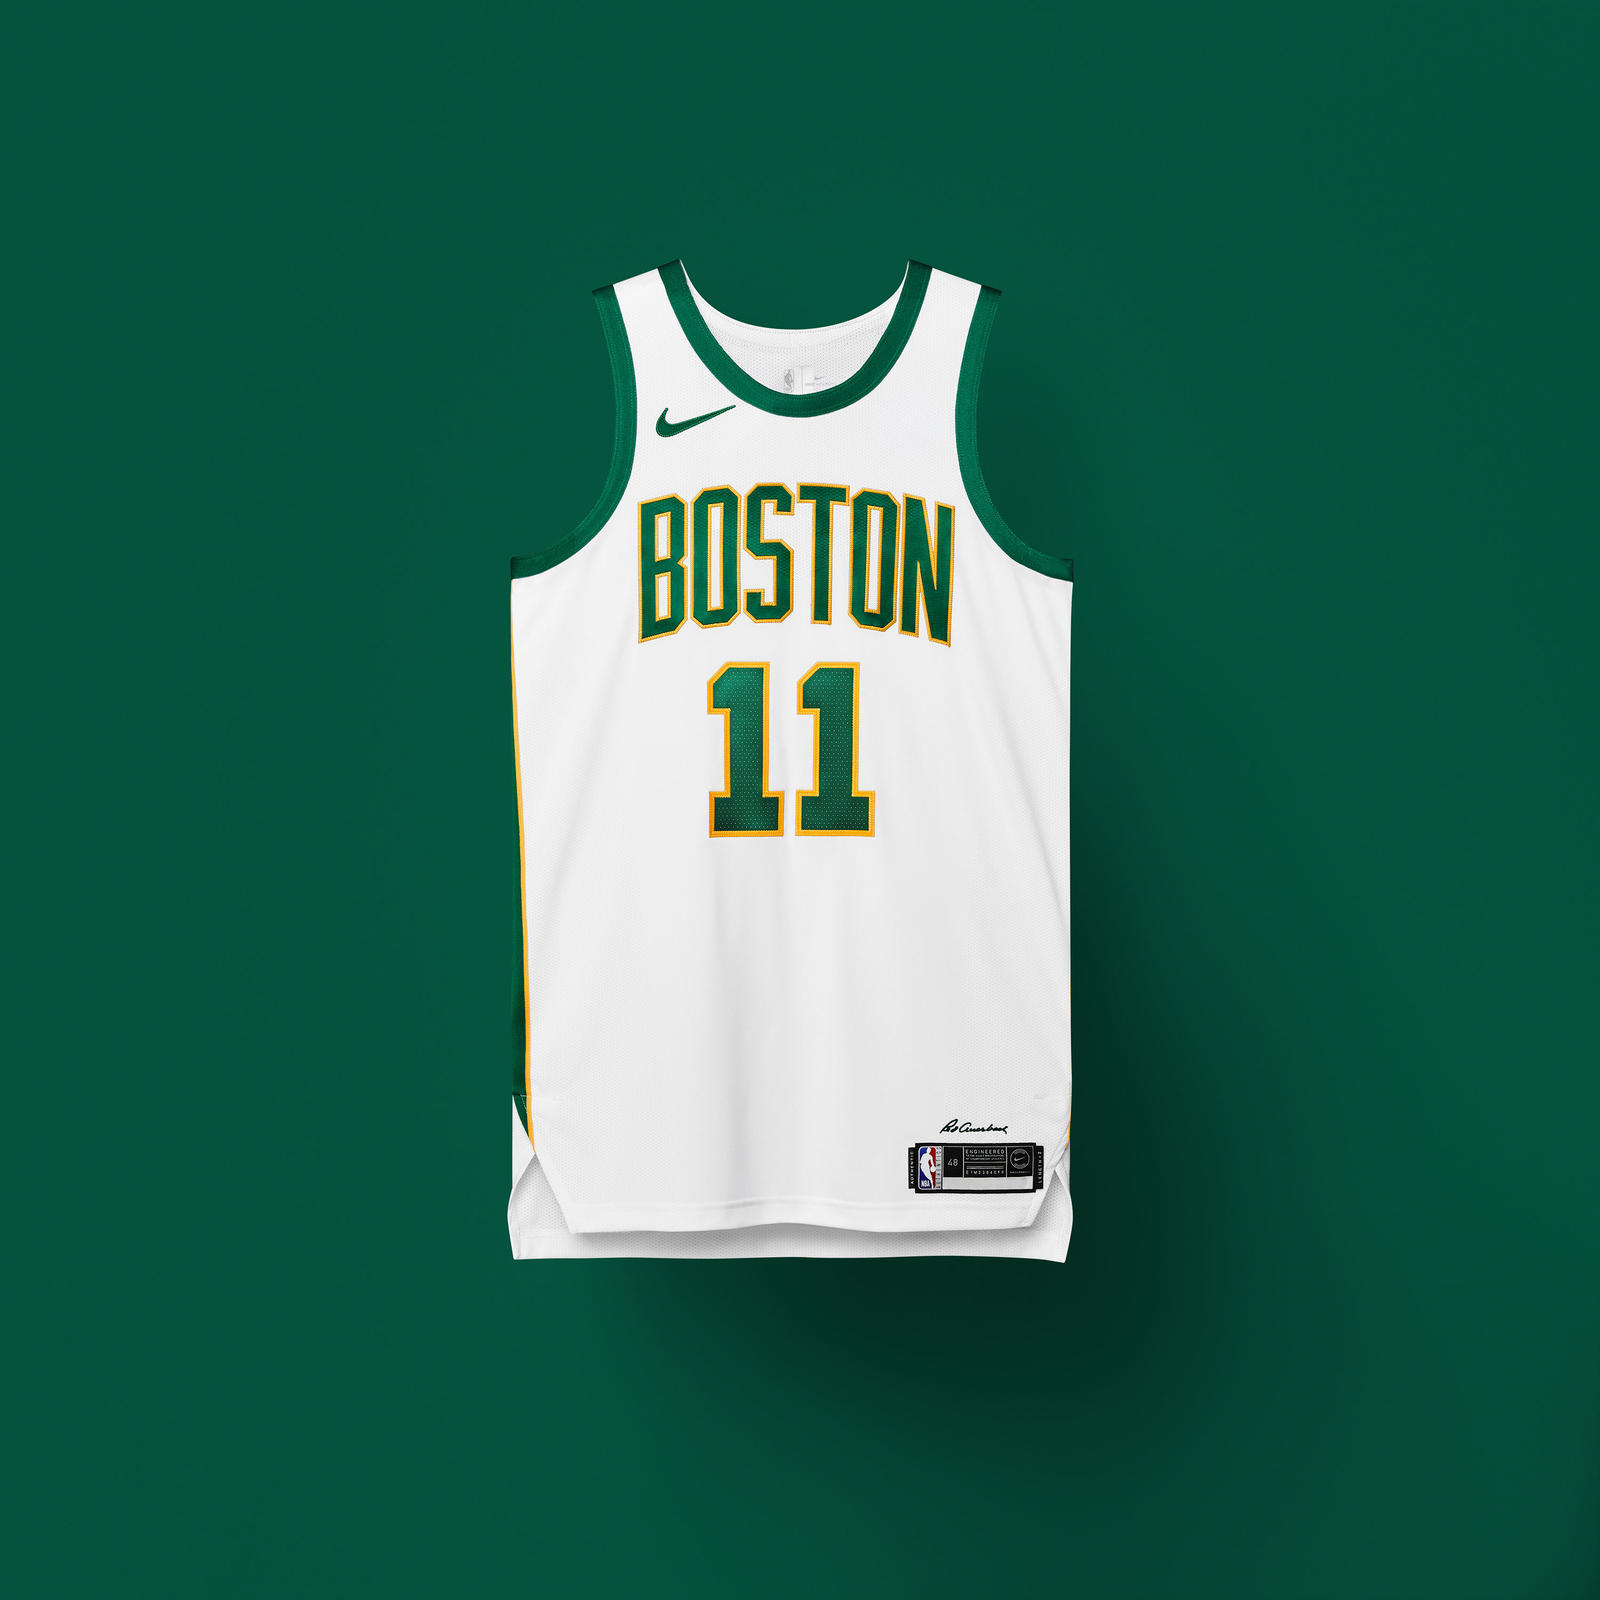 Ho18 Nba City Edition Boston Jersey 1070 Re. BOSTON CELTICS e14e607ca